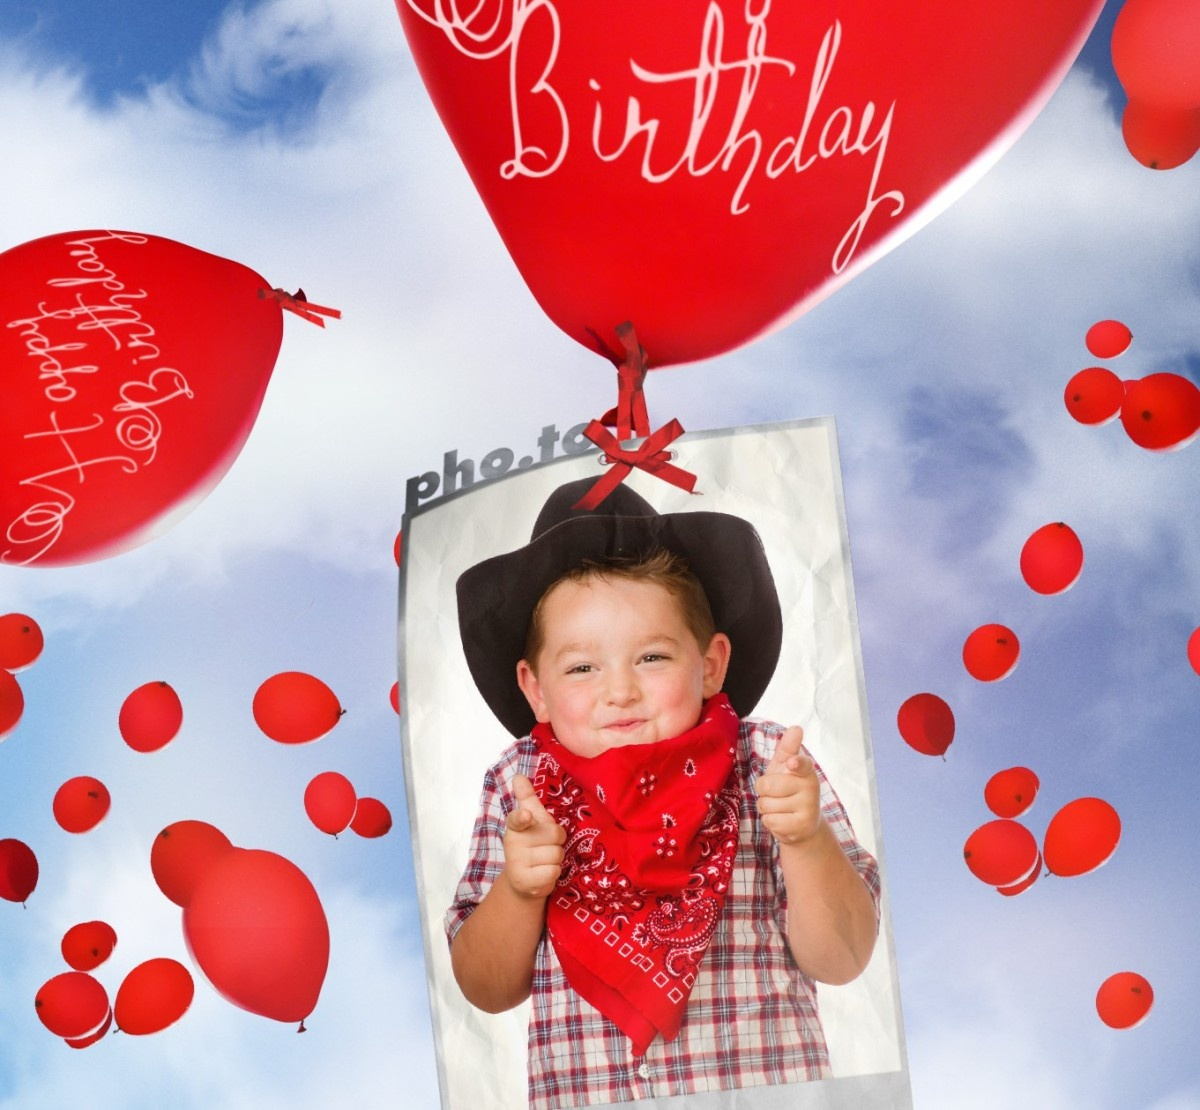 Birthday Card With Flying Balloons! Printable Photo Template - Make Your Own Printable Birthday Cards Online Free